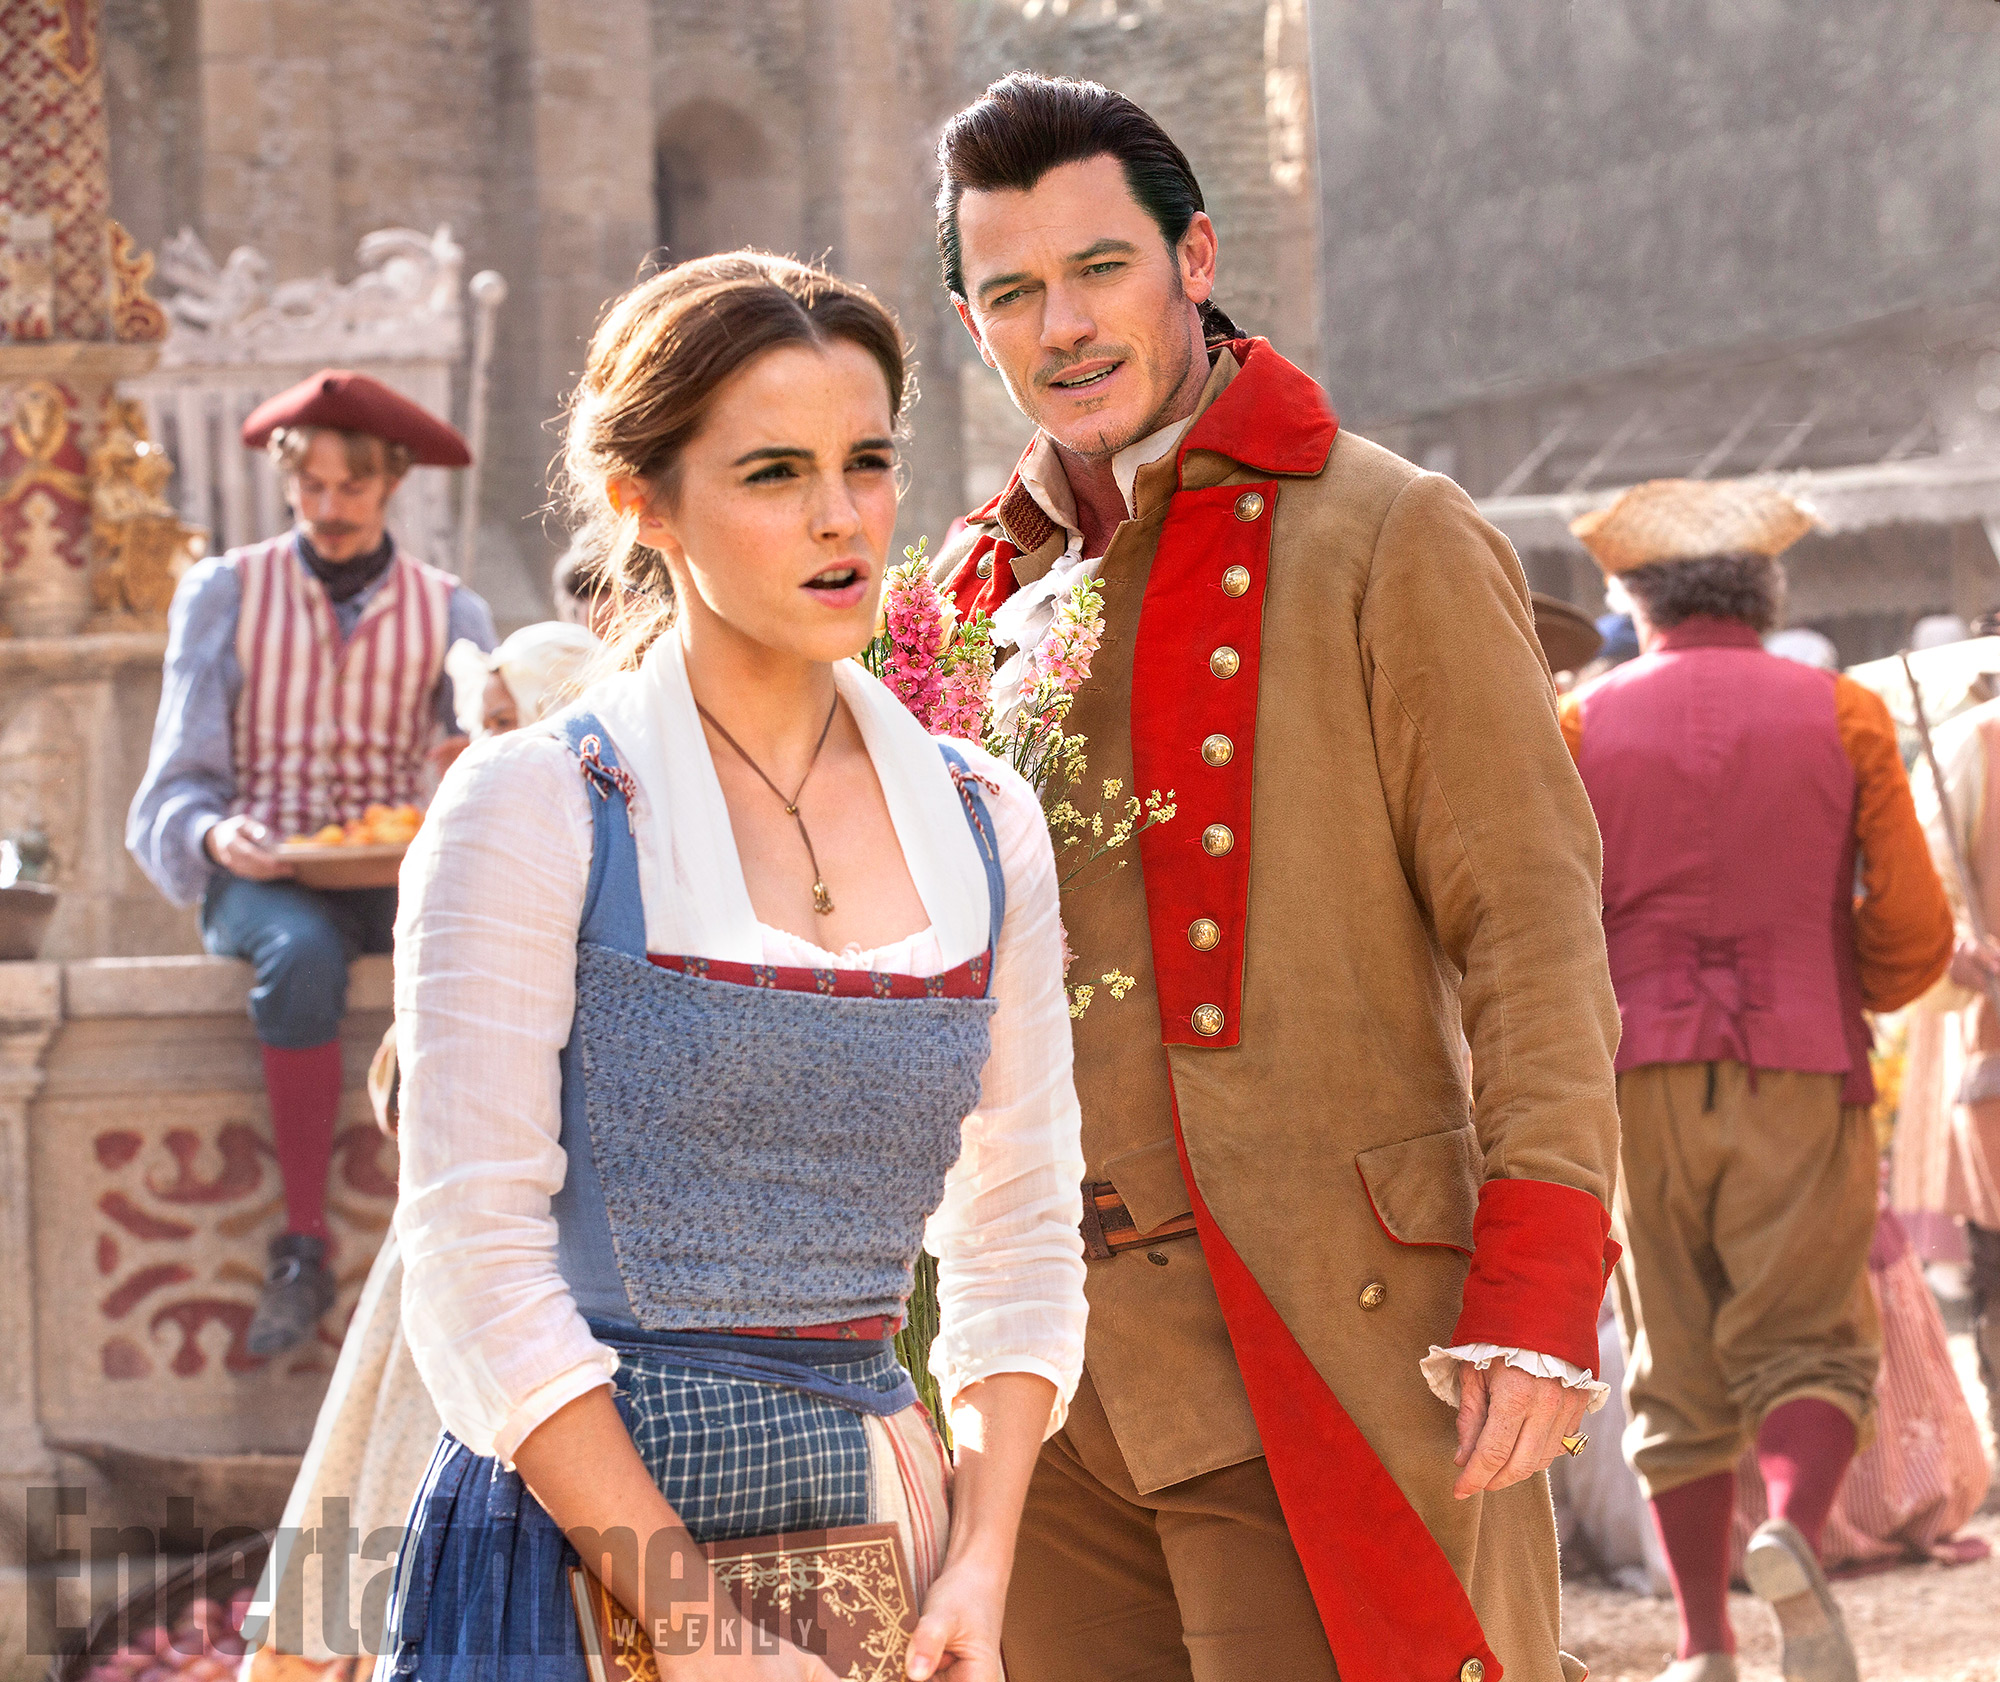 luke-evans-gaston-is-especially-good-at-expectorating-but-that-doesnt-set-belles-heart-a-flutter-emma-watson-beauty-and-the-beast.jpg